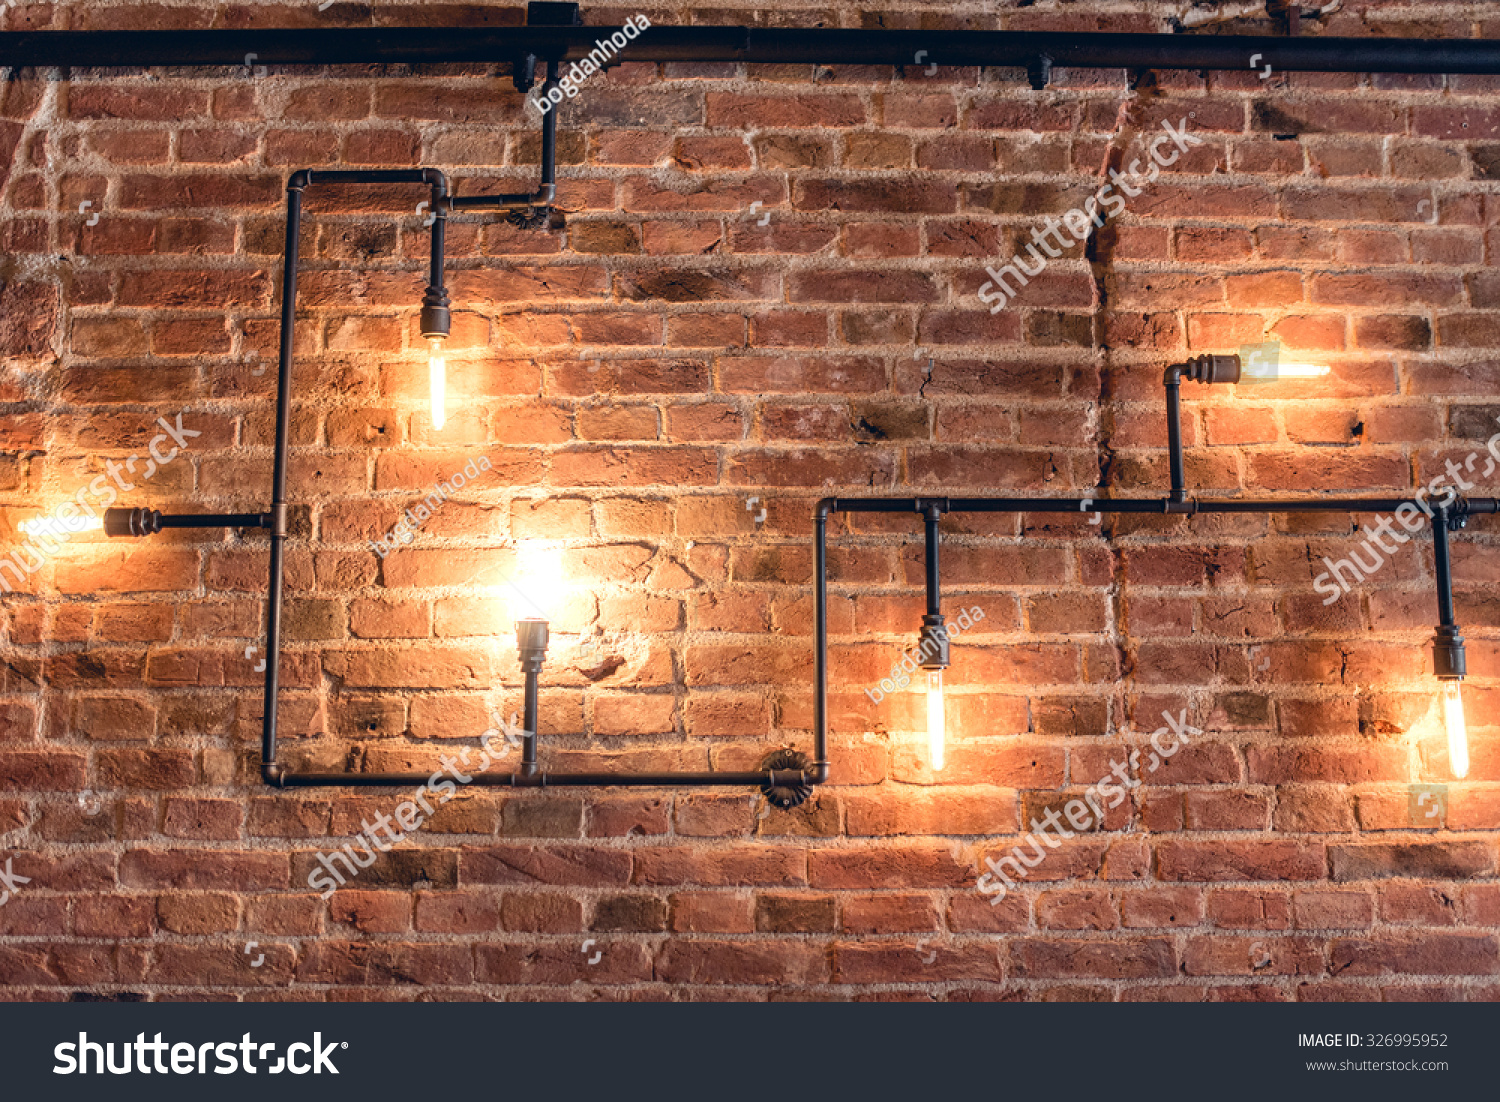 Interior Design Of Vintage Wall Rustic Brick With Light Bulbs And Pipes